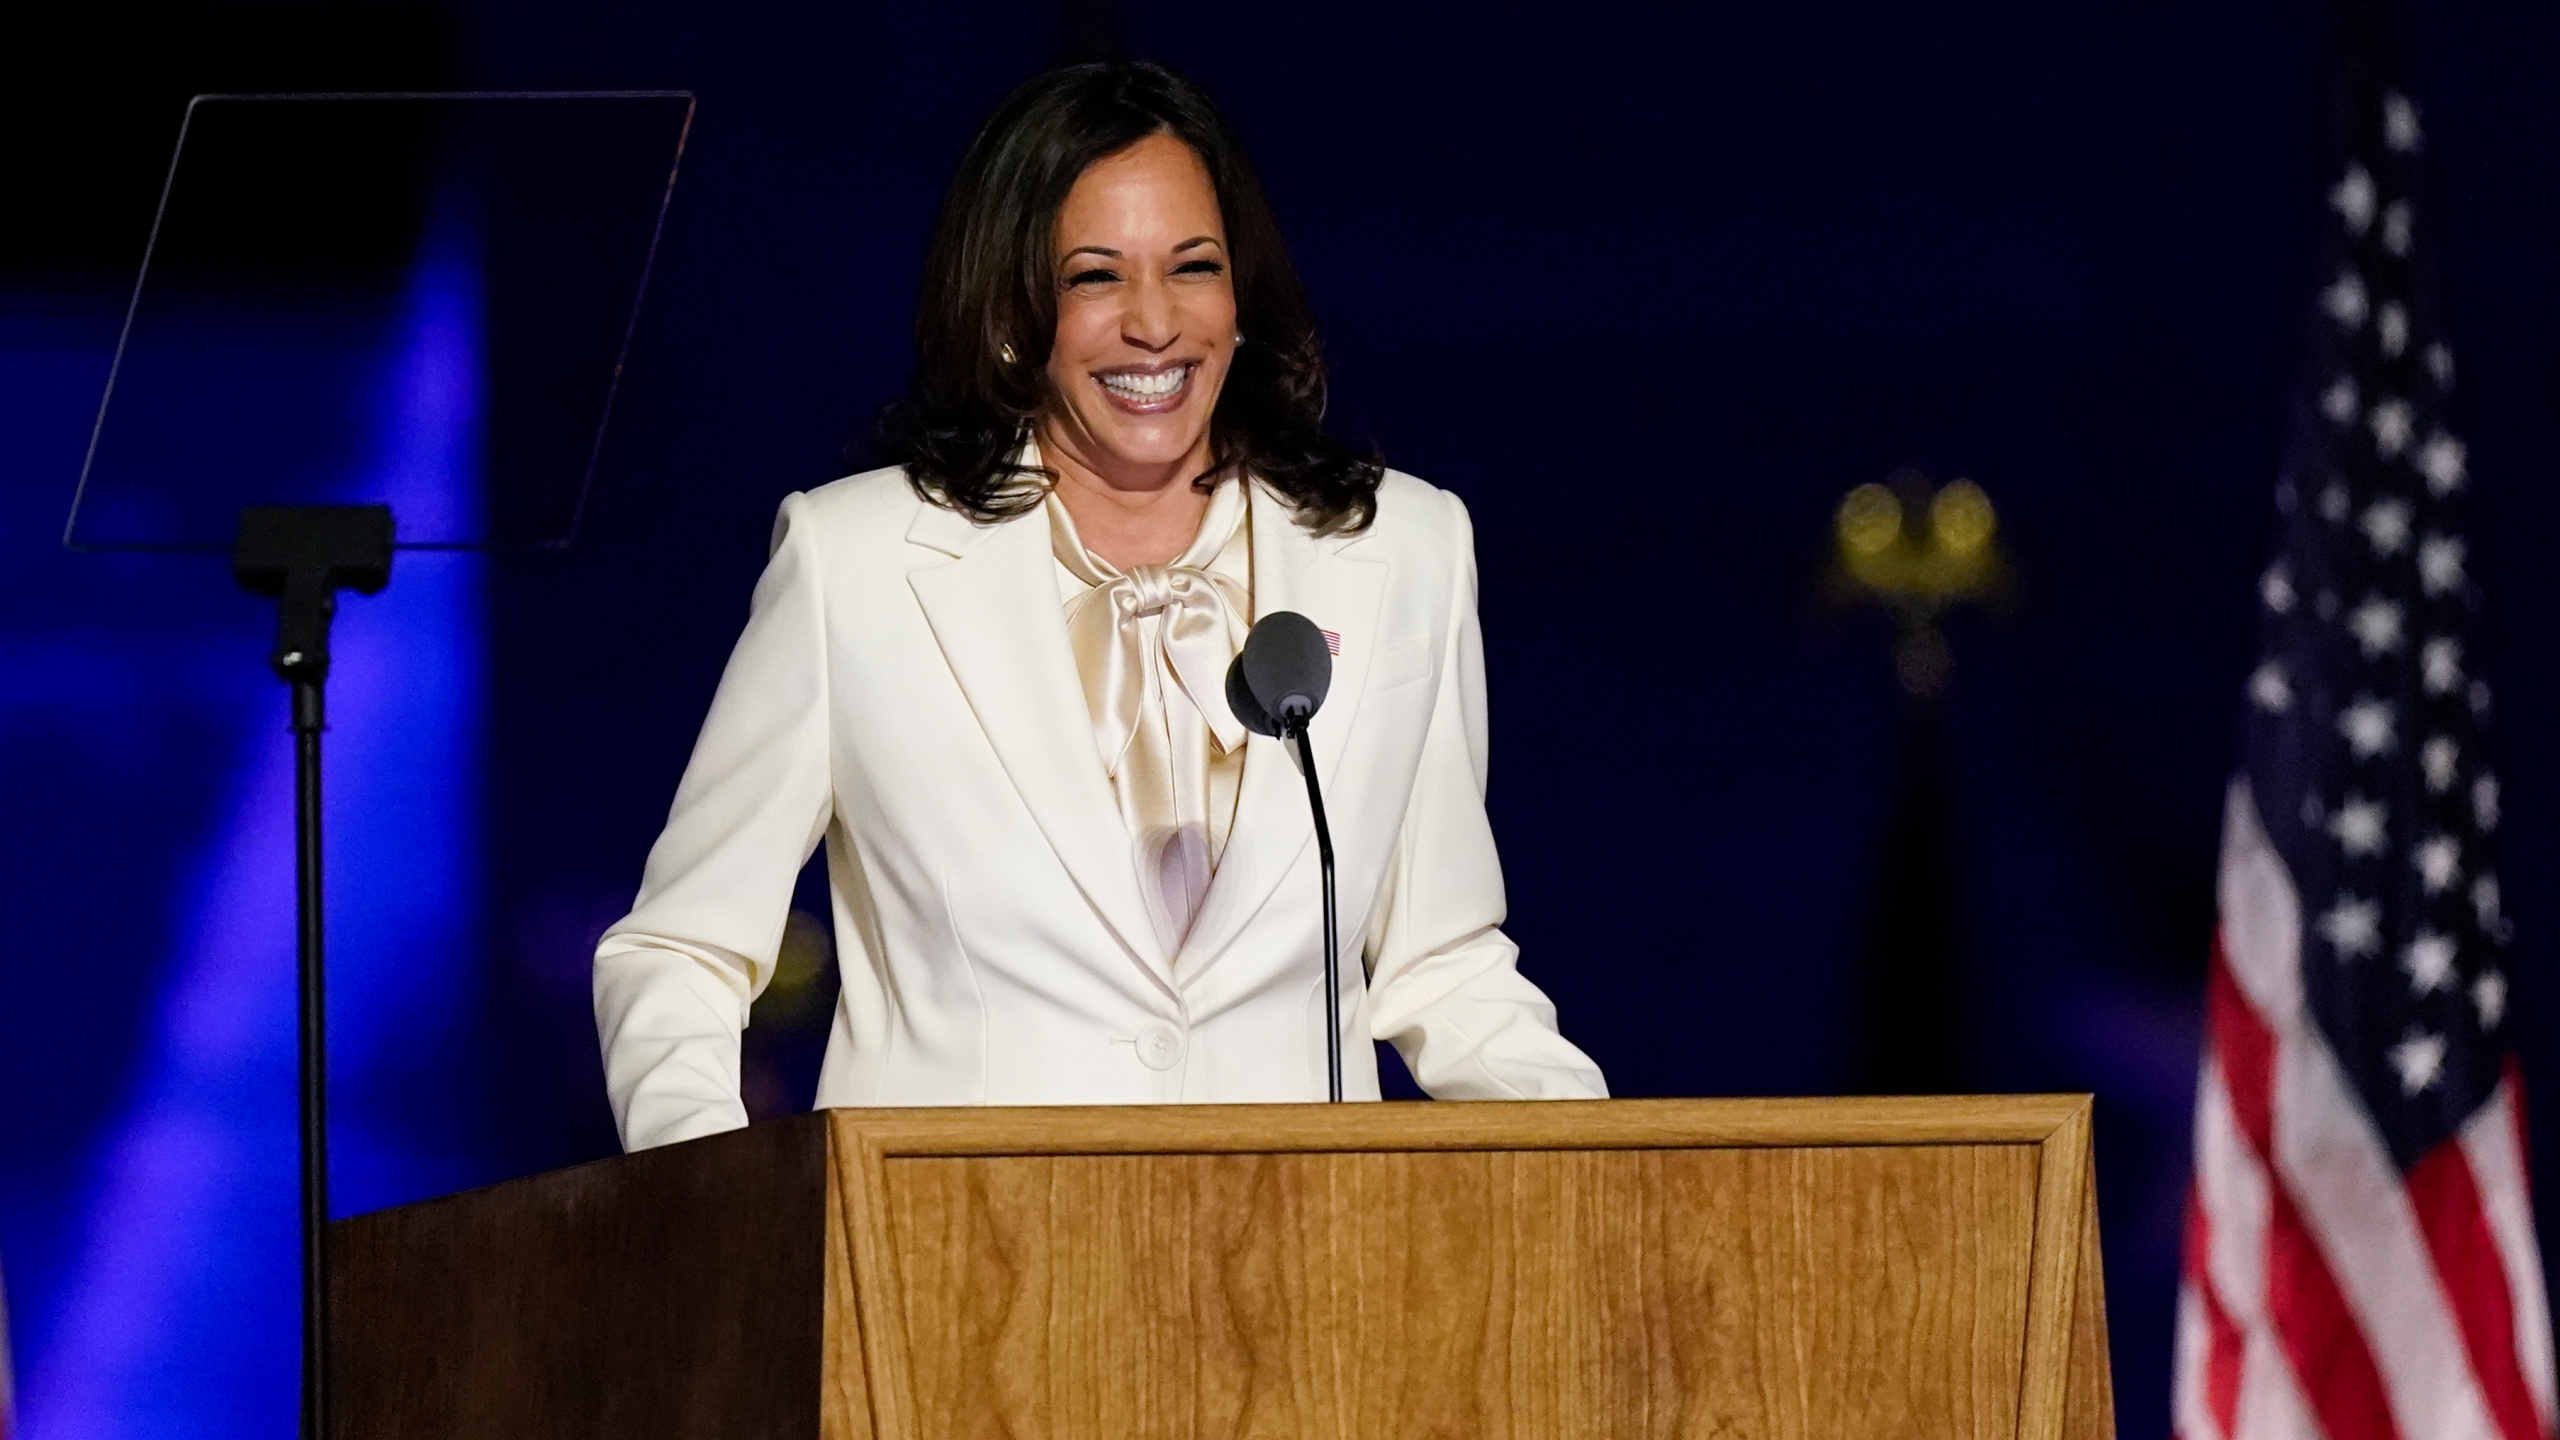 Vice President-elect Kamala Harris speaks Saturday, Nov. 7, 2020, in Wilmington, Del. (Andrew Harnik/AP Photo)